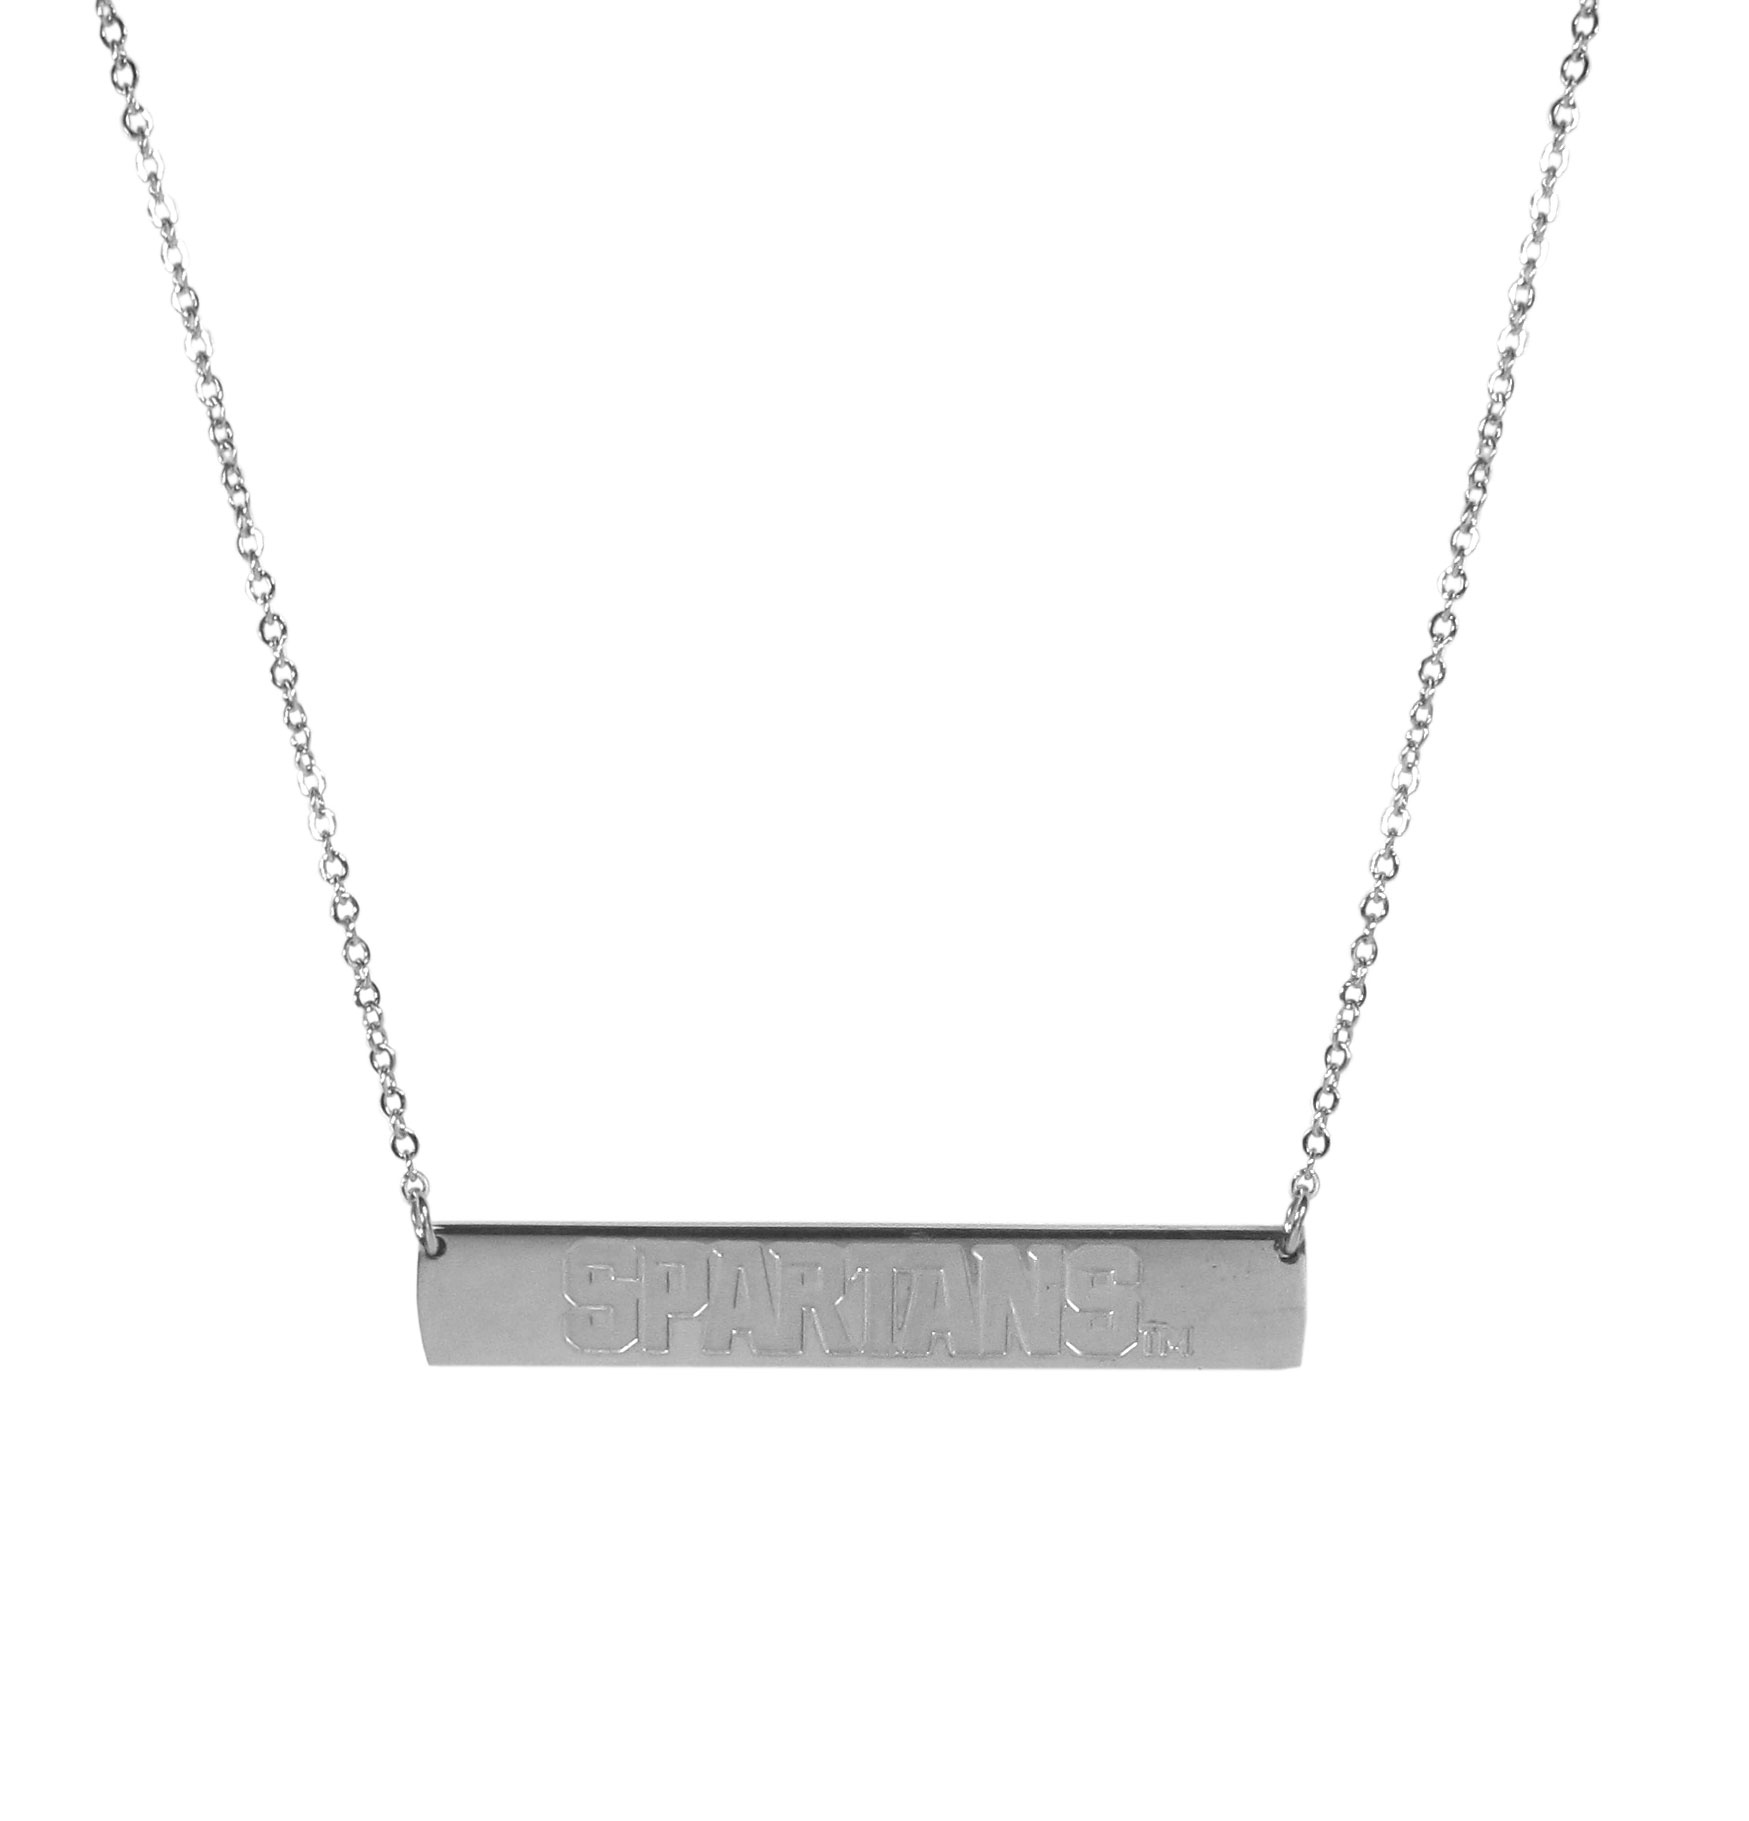 Michigan St. Spartans Bar Necklace - Simply beautiful Michigan St. Spartans bar necklace on a 20 inch link chain with 2 inch adjustable extender. This light-weight bar necklace has a stylish silver colored finish with the team name expertly etched on the 1.5 inch bar. Every female  fan will enjoy this contempory fashion accessory.